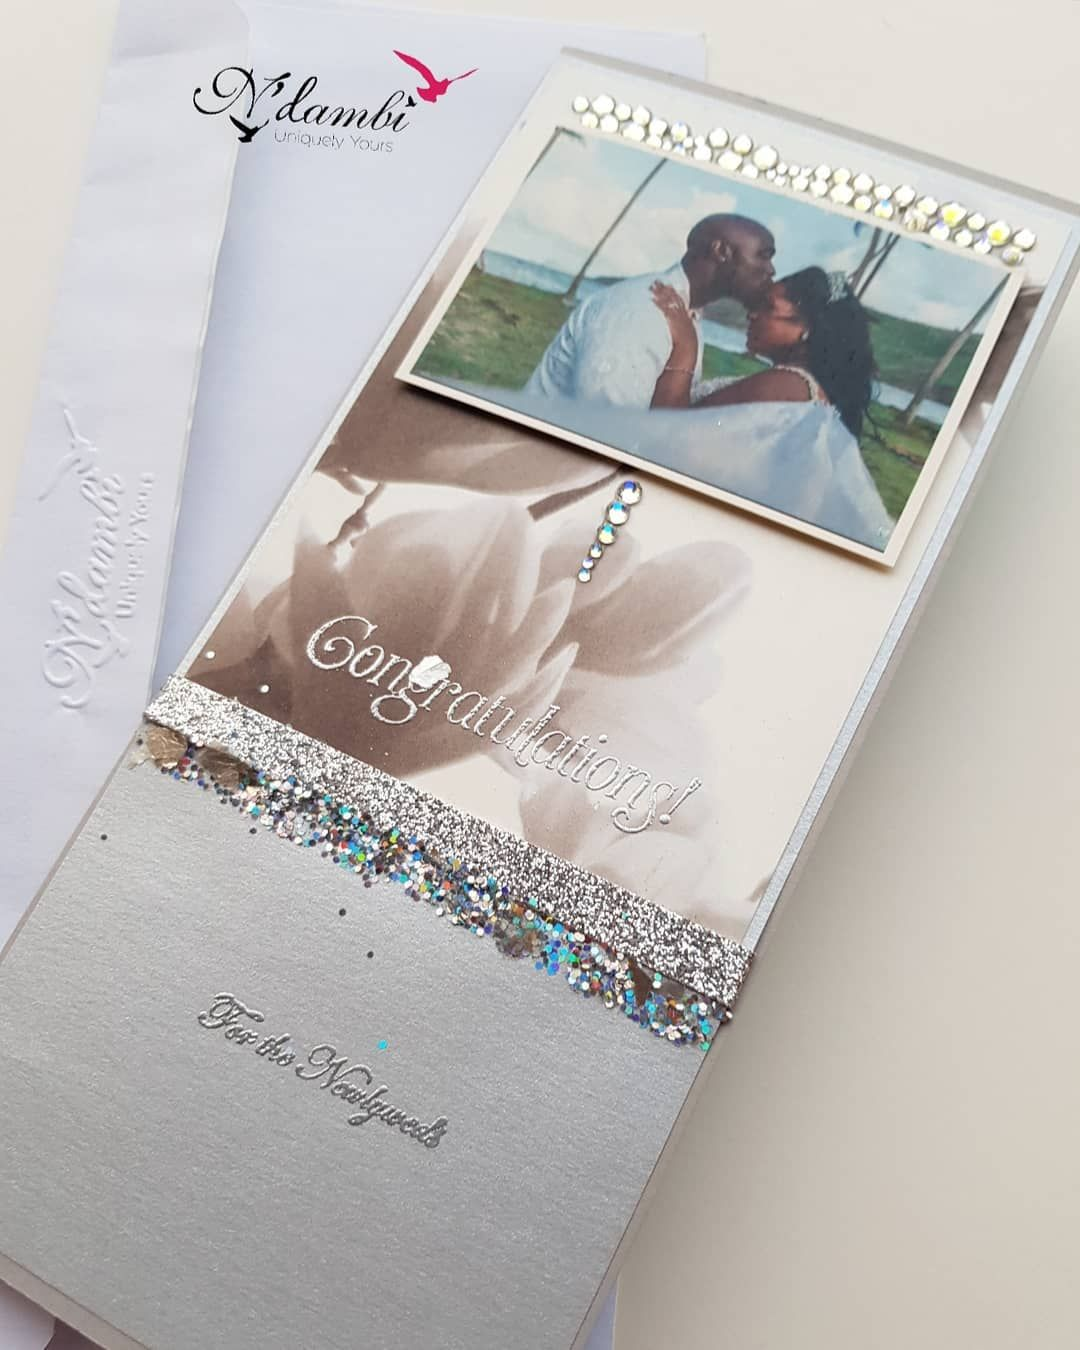 Love & Glitter! Uniquely Yours . . . . . . . #ndambicards #uniquelyuours #handmadecards #weddings #weddingcards #love #marriage #weddedbliss